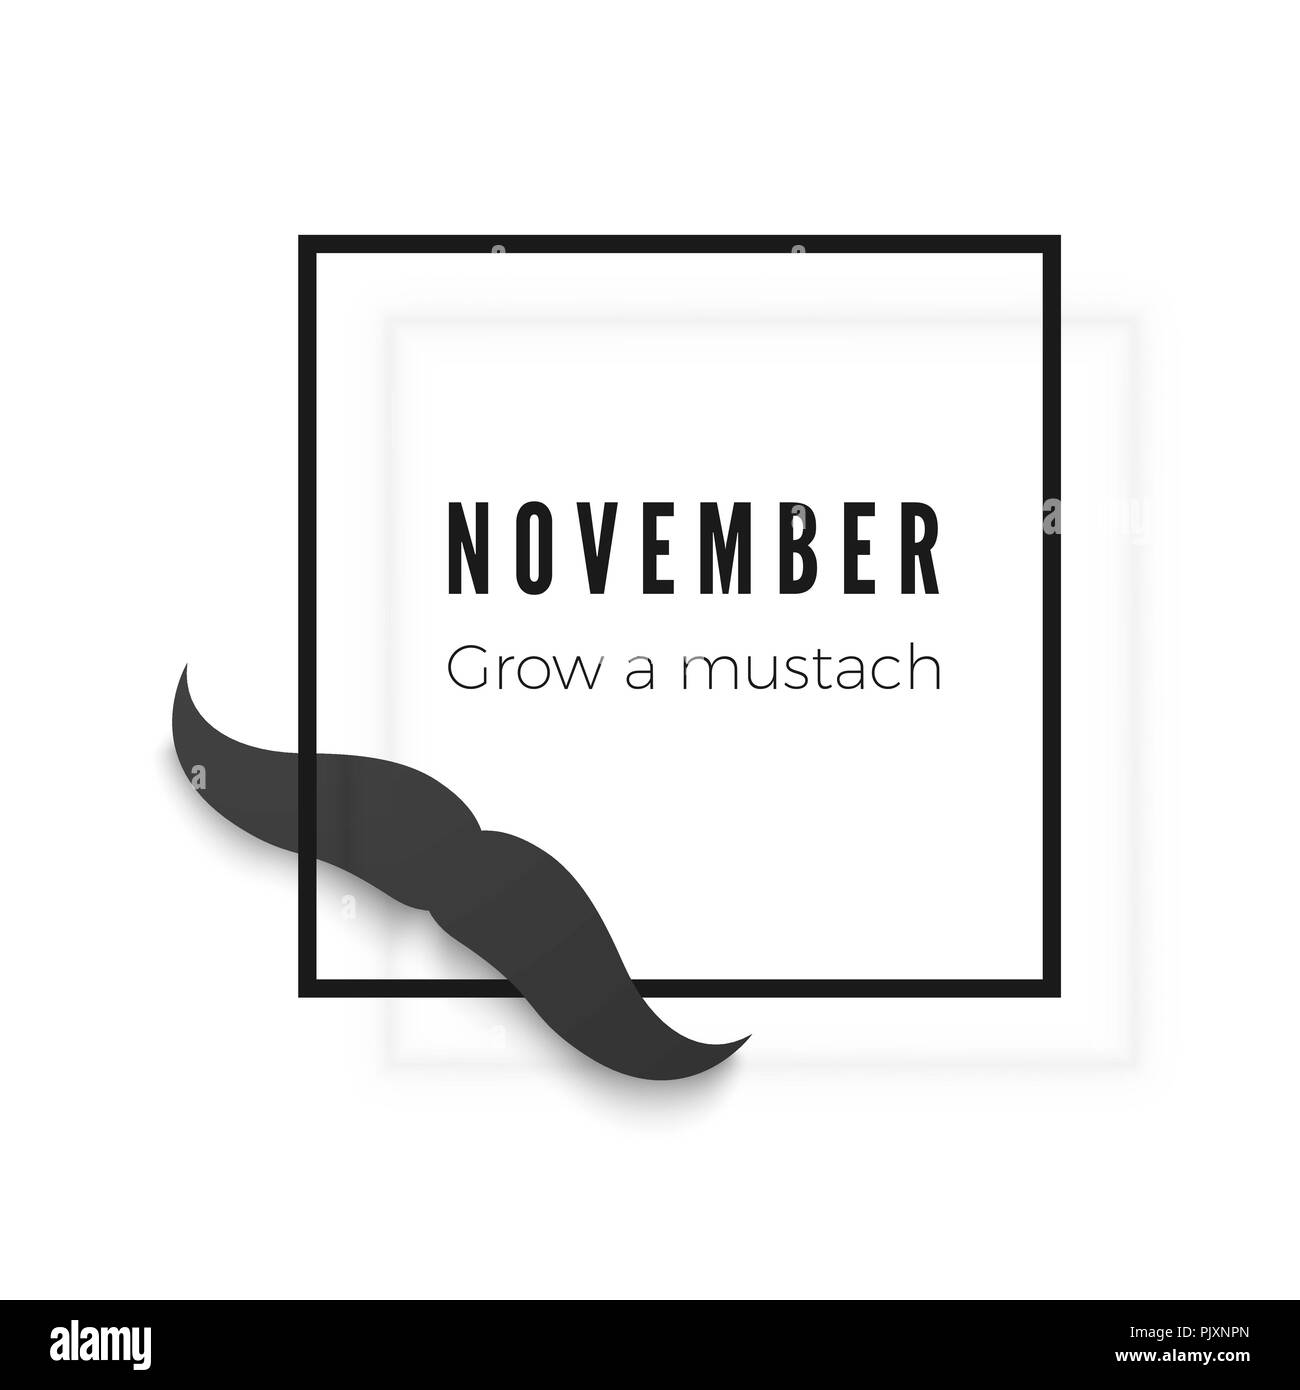 Mustache season. mustache mask and frame with text. Vector illustration - Stock Image